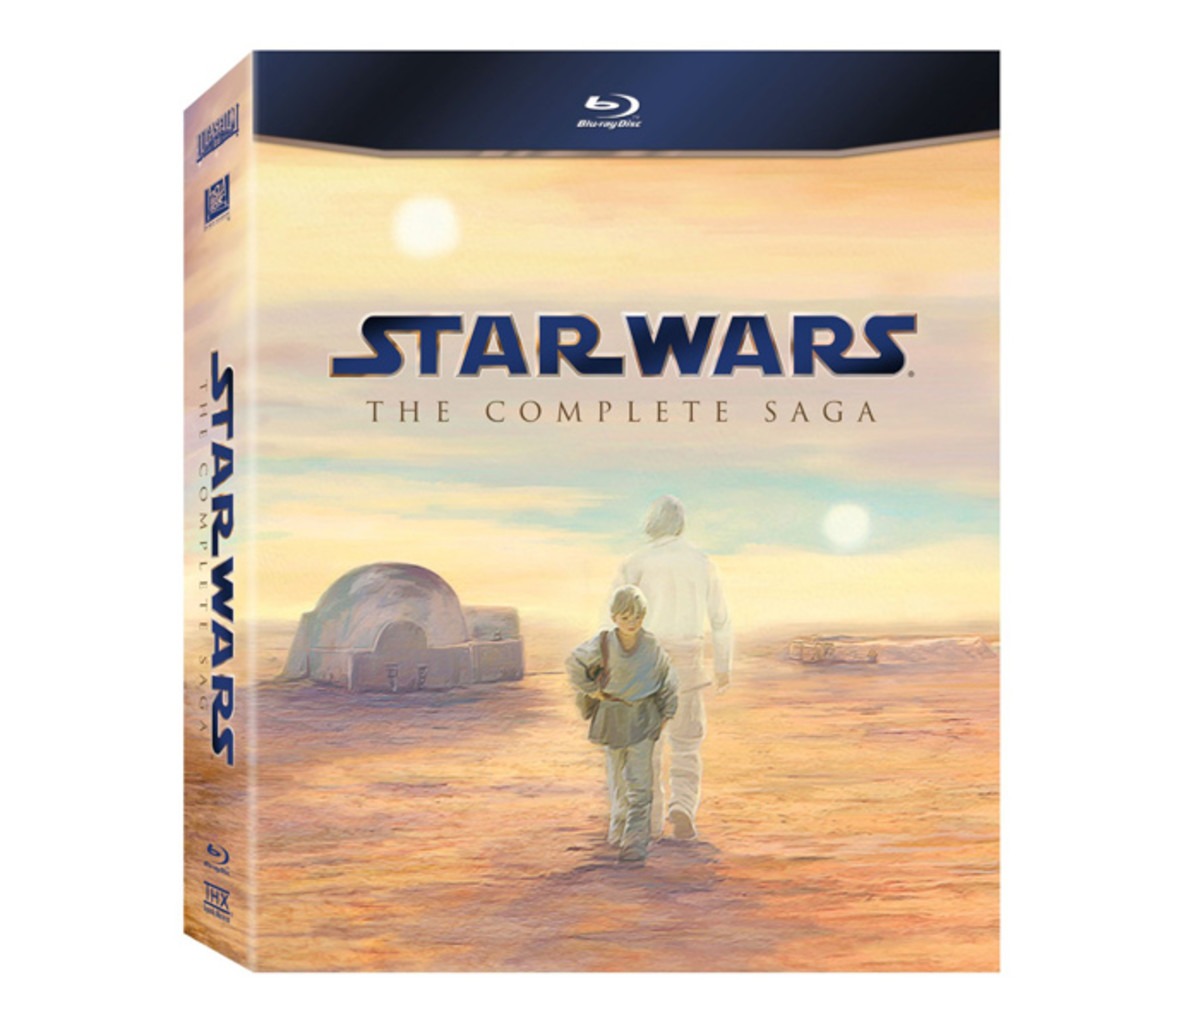 10-things-to-buy-star-wars-day-02